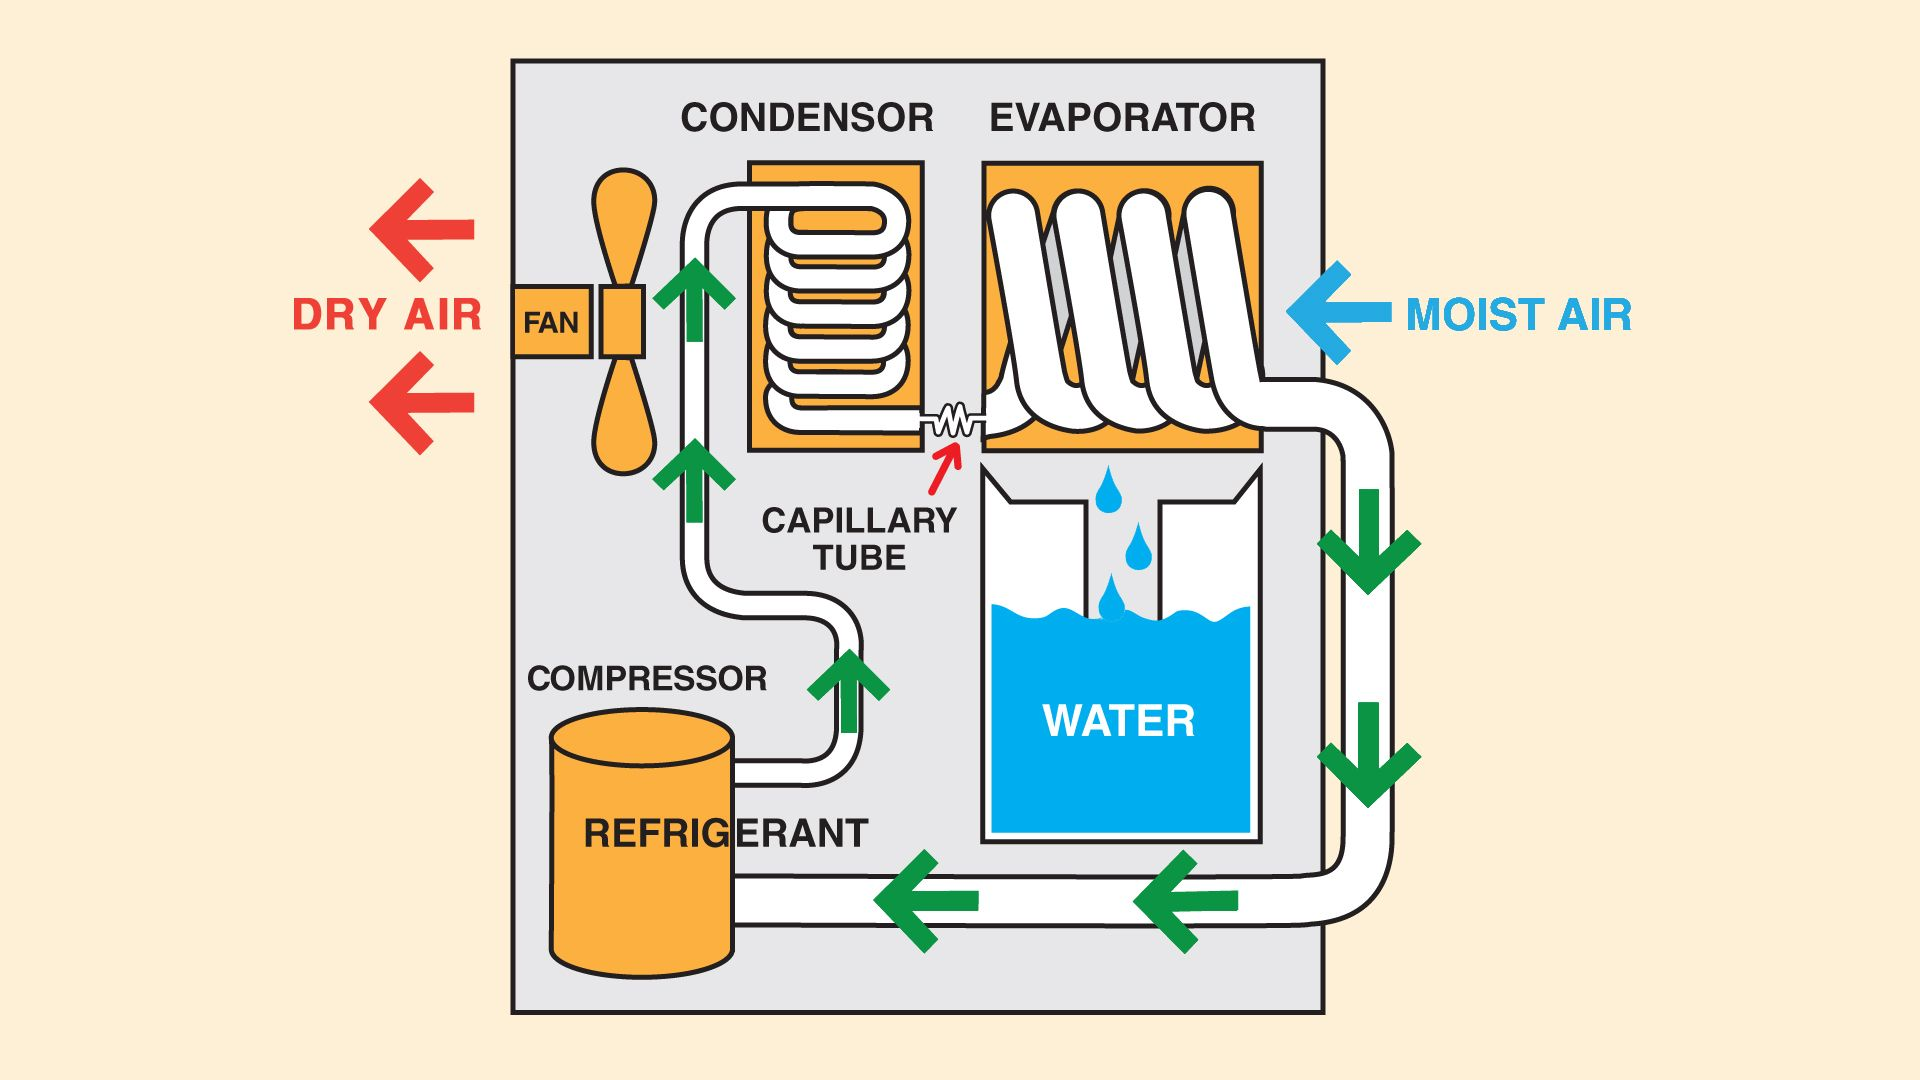 dehumidifier diagram plumbing how to dehumidifiers heating diagram of a dehumidifier [ 1920 x 1080 Pixel ]